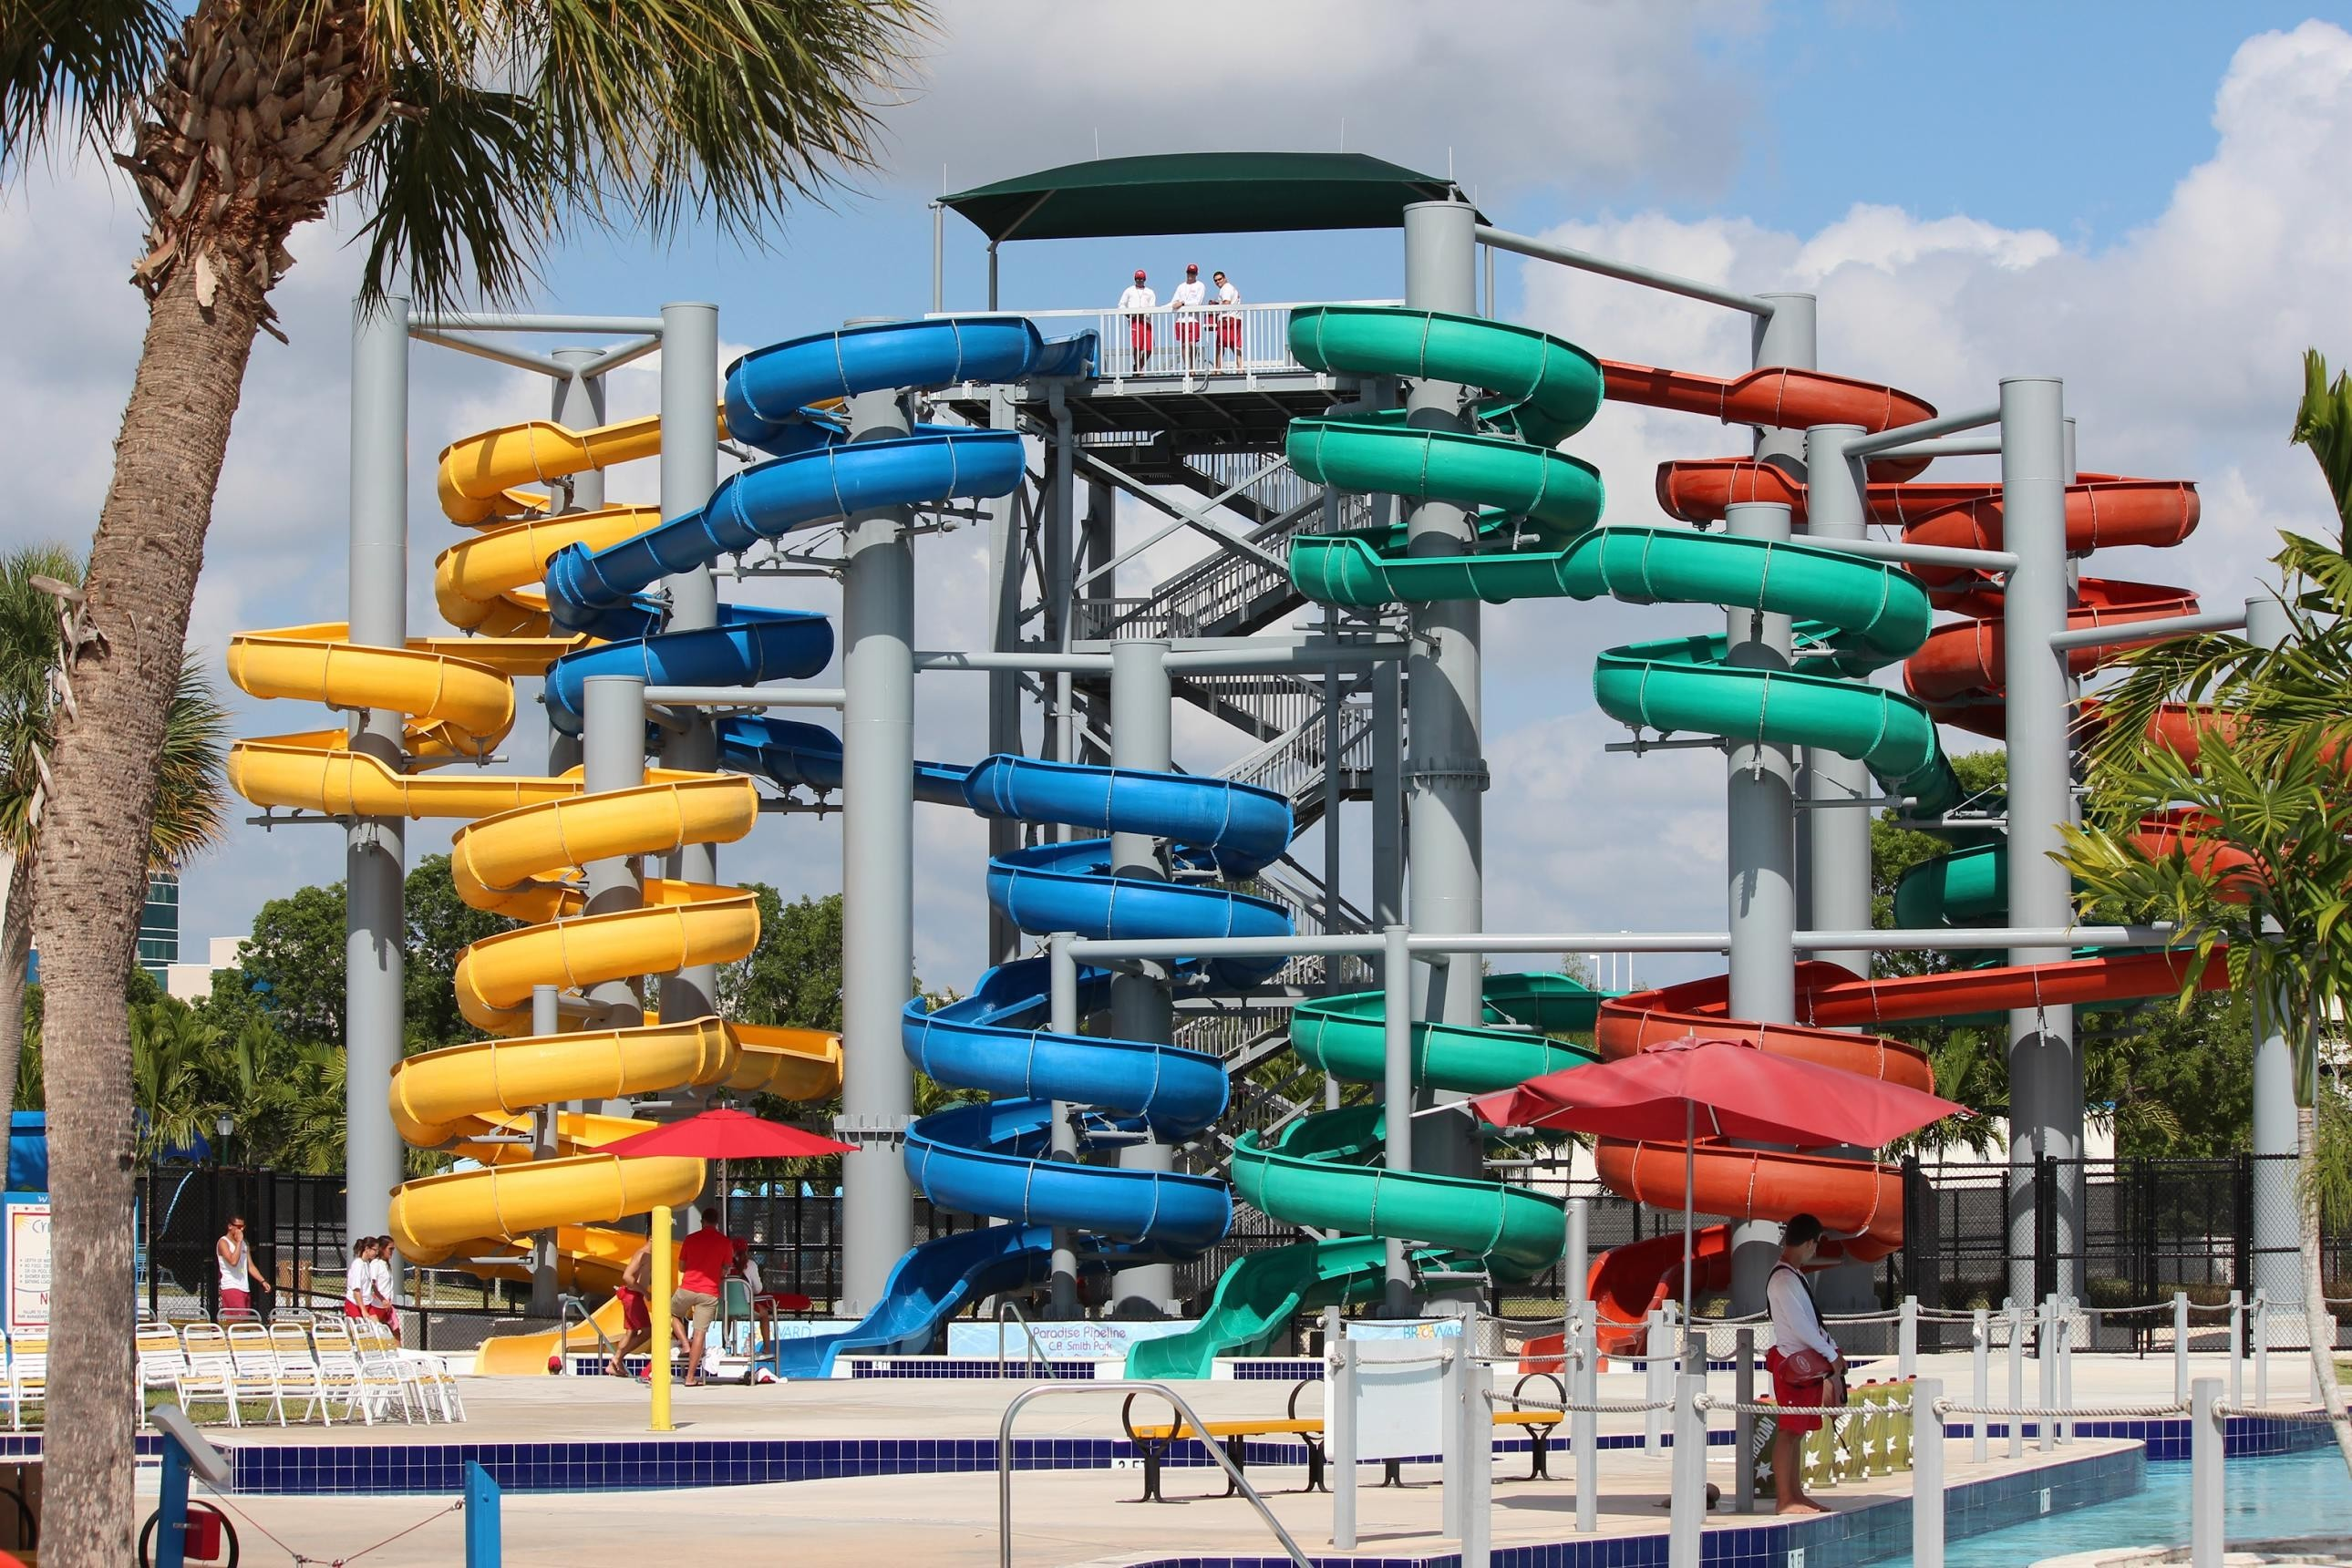 Check out the five-story corkscrew waterslides. - PHOTO COURTESY OF BROWARD COUNTY PARKS